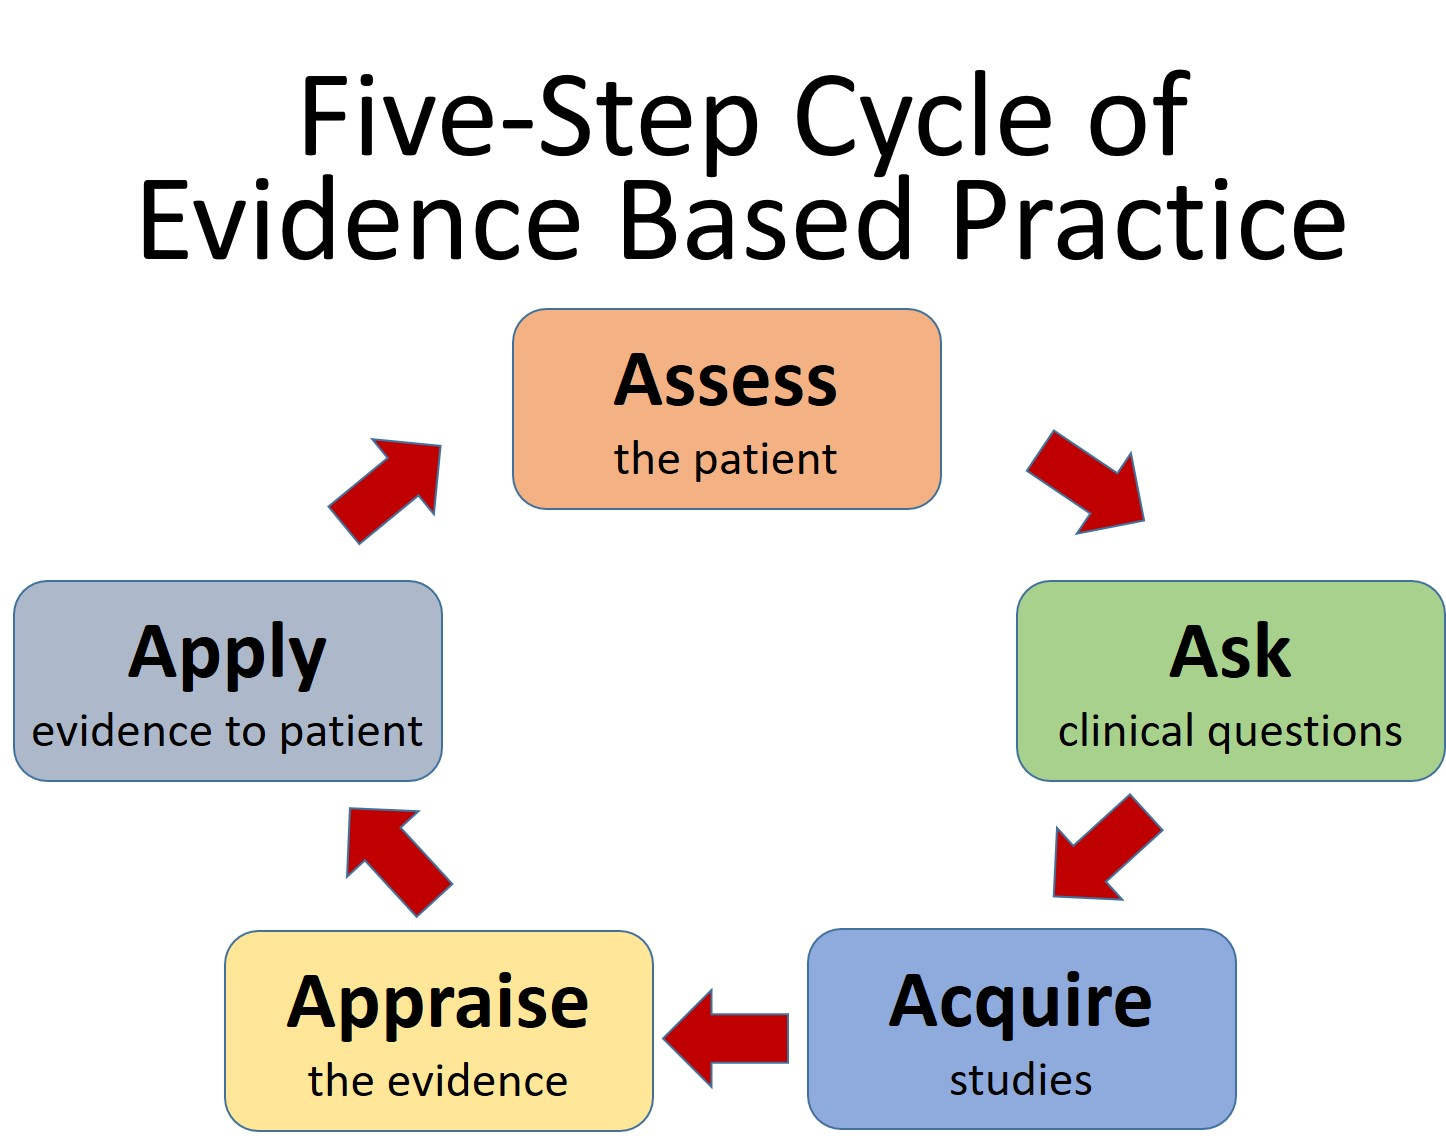 5 Step Cycle of Evidence Based Practice